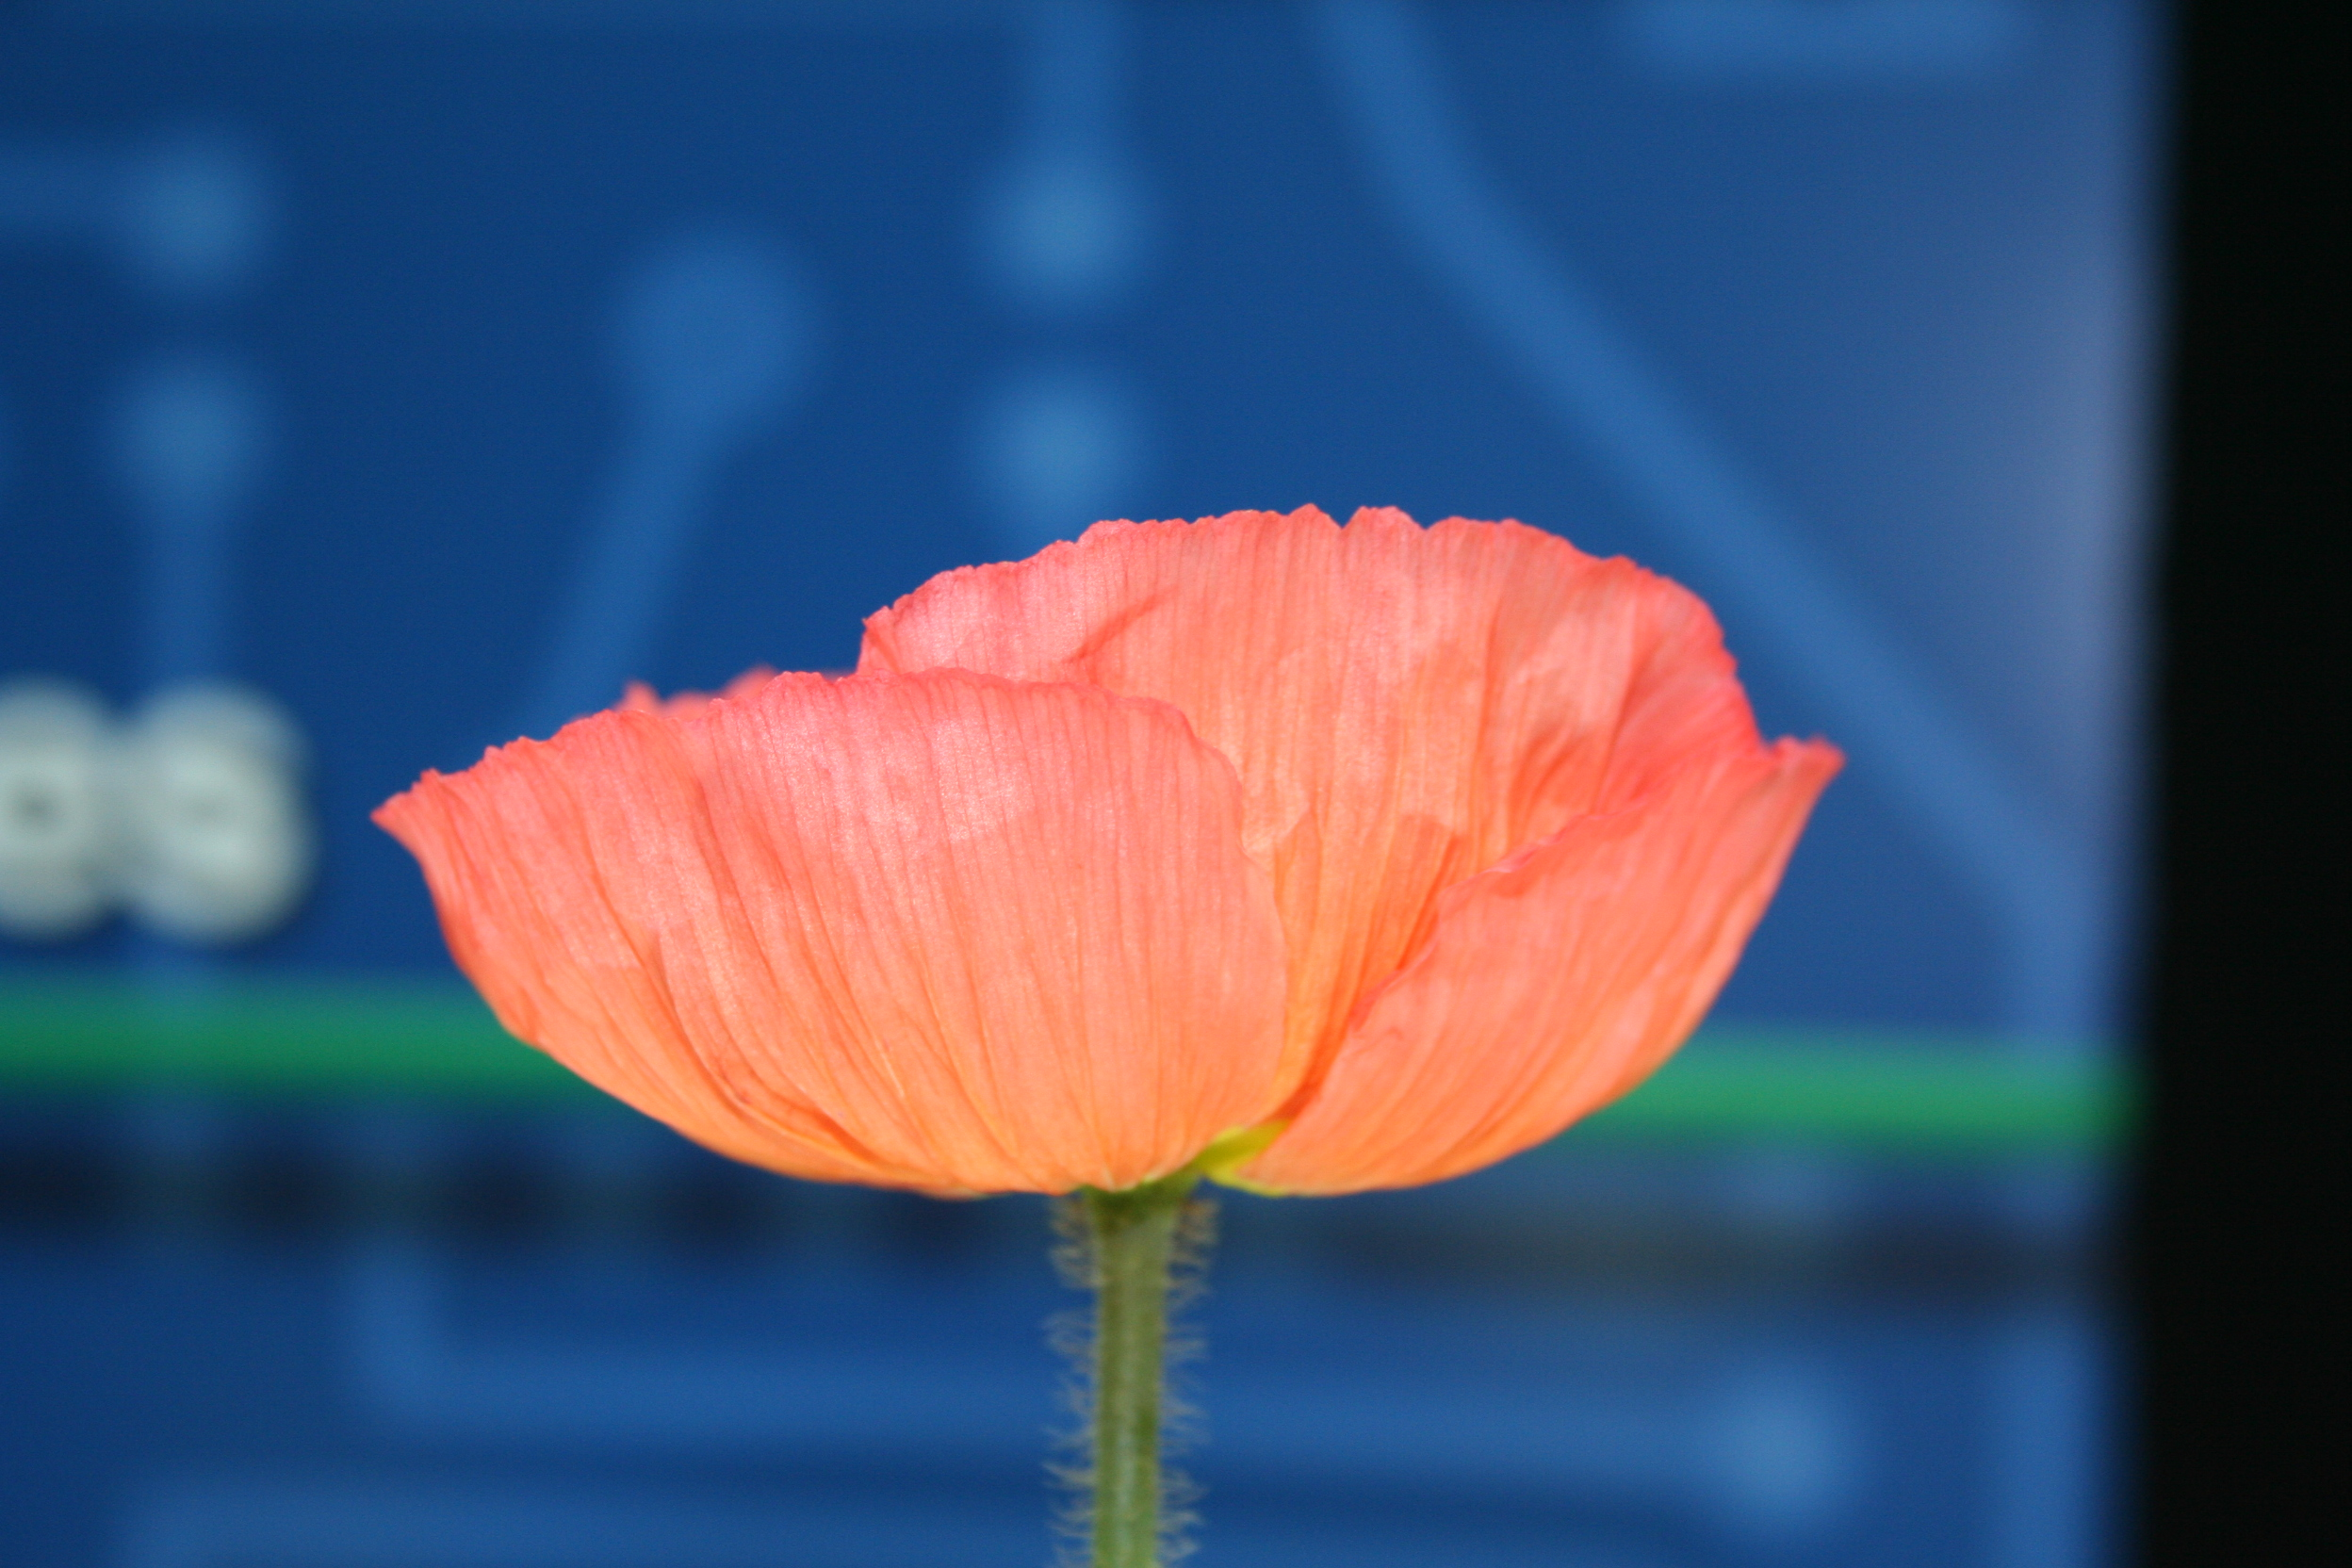 The Institute for Advanced Learning and Research, and Virginia Tech scientists developed a new plant breeding method that helped save the Icelandic Temprtress poppy.